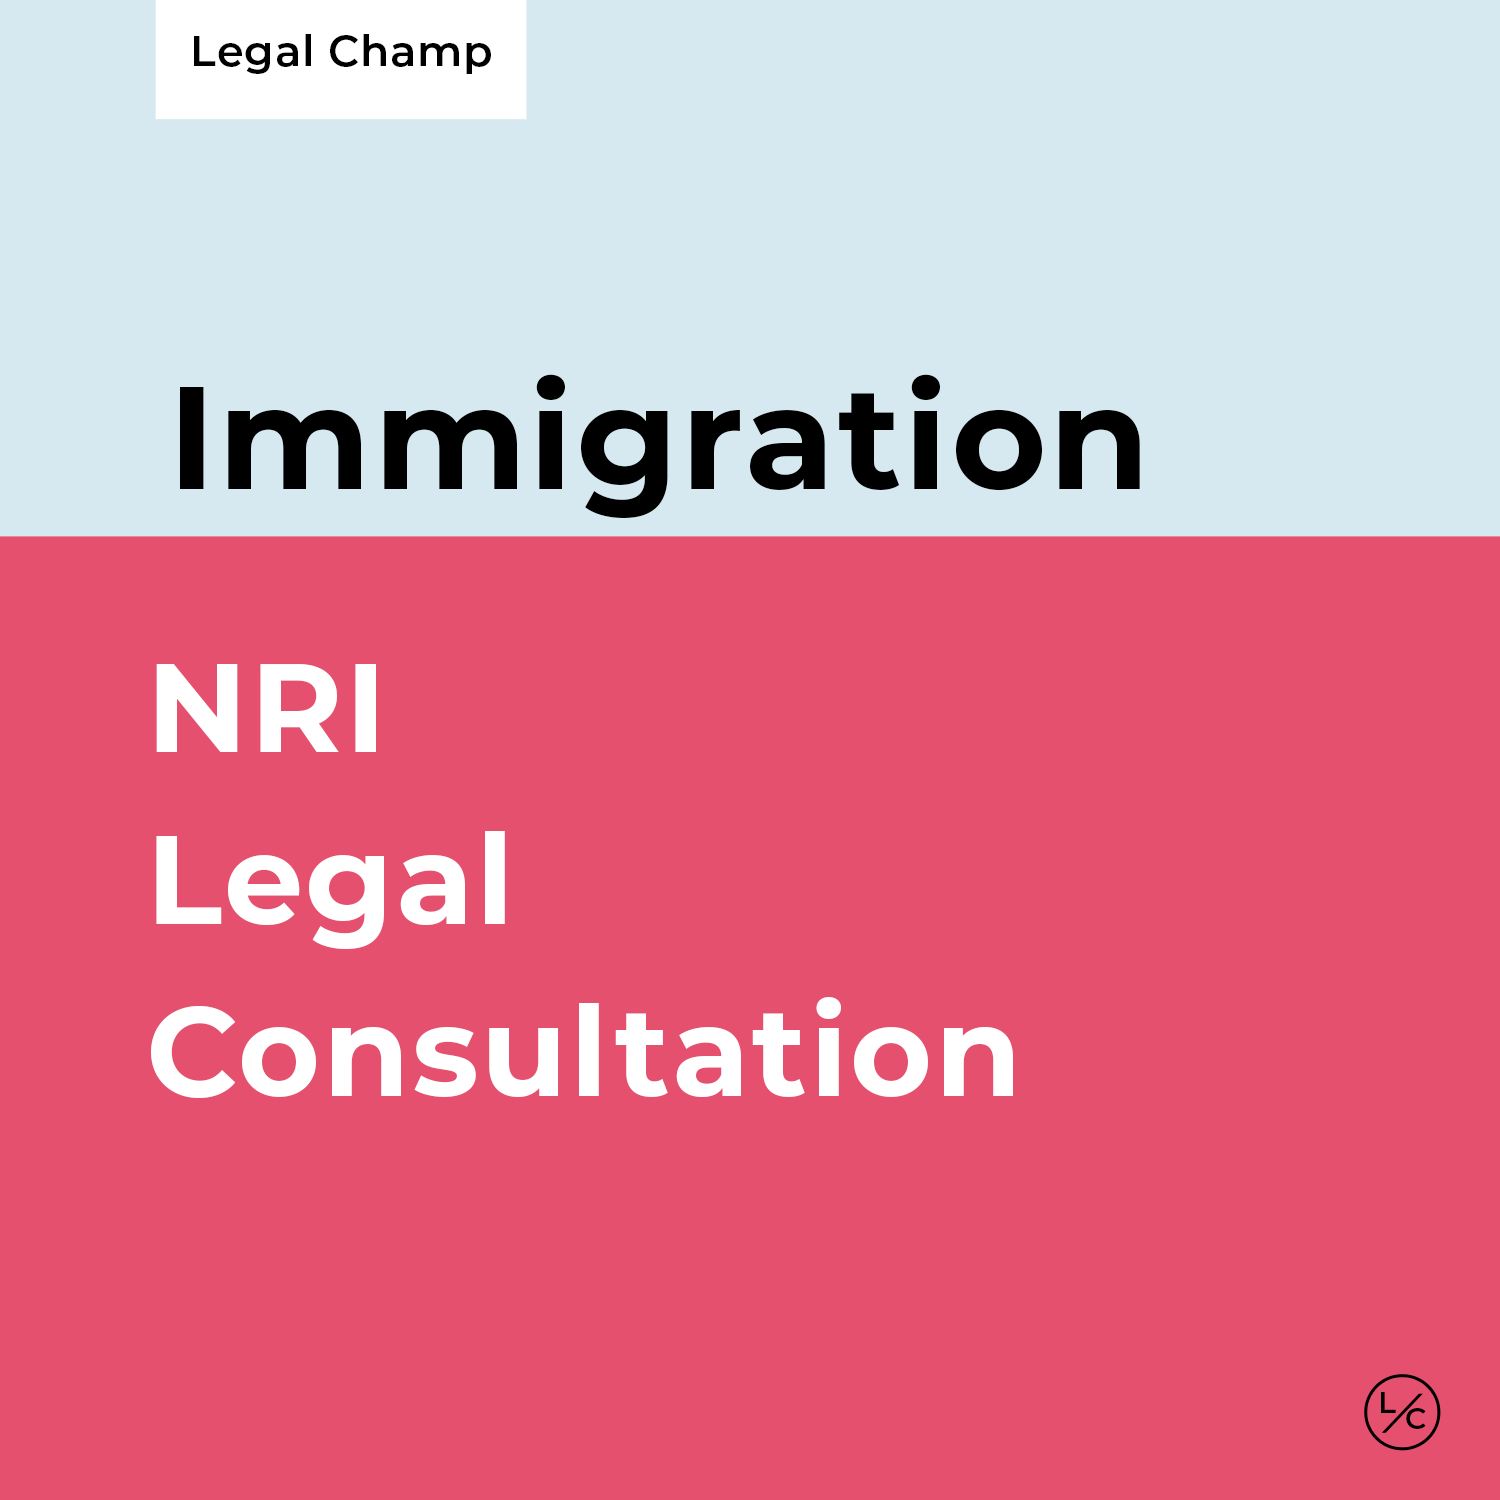 NRI Legal Consultation